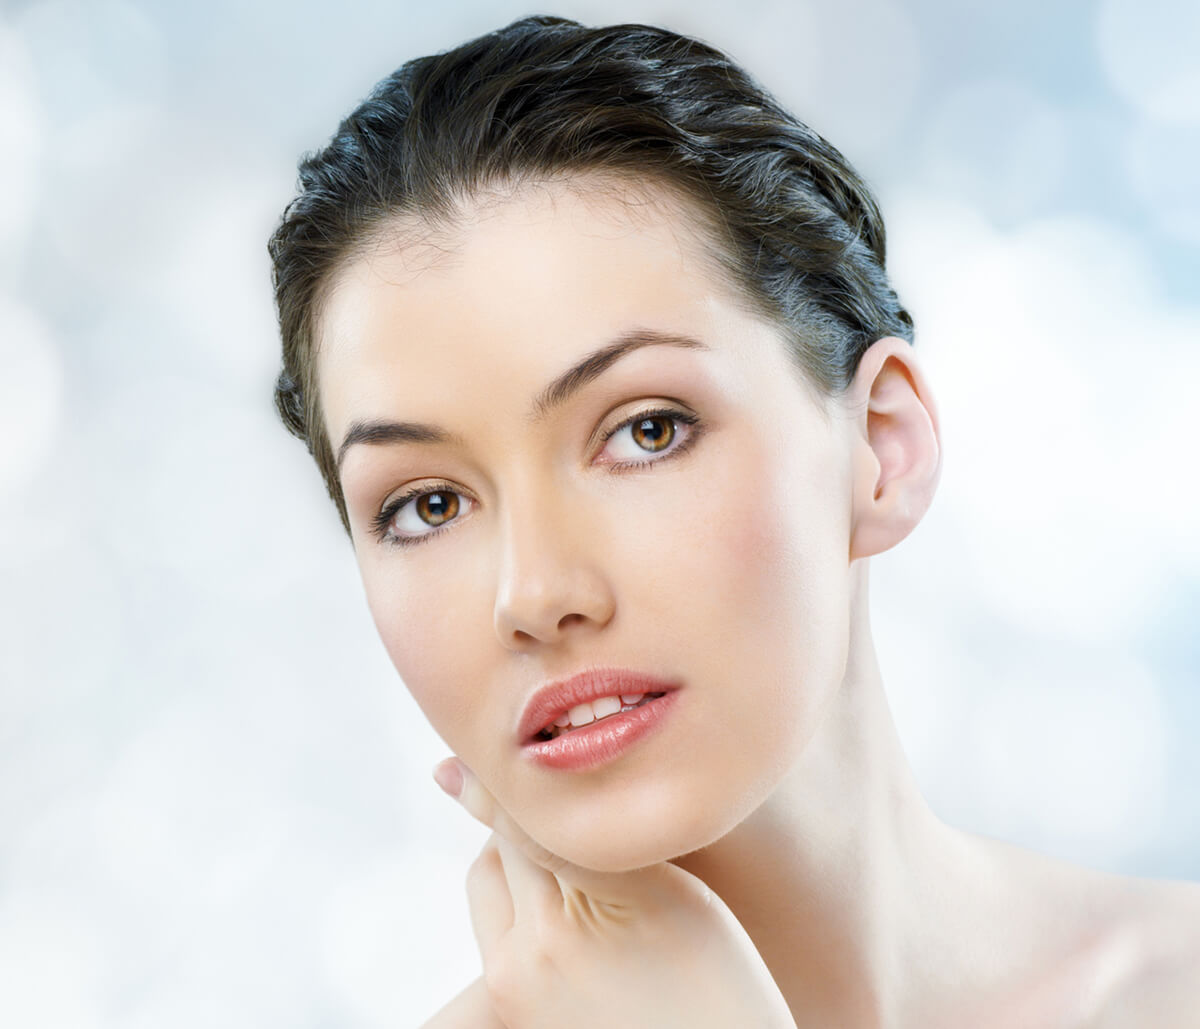 Where Can I Find Dermatology Laser Treatments in Washington, DC Area?